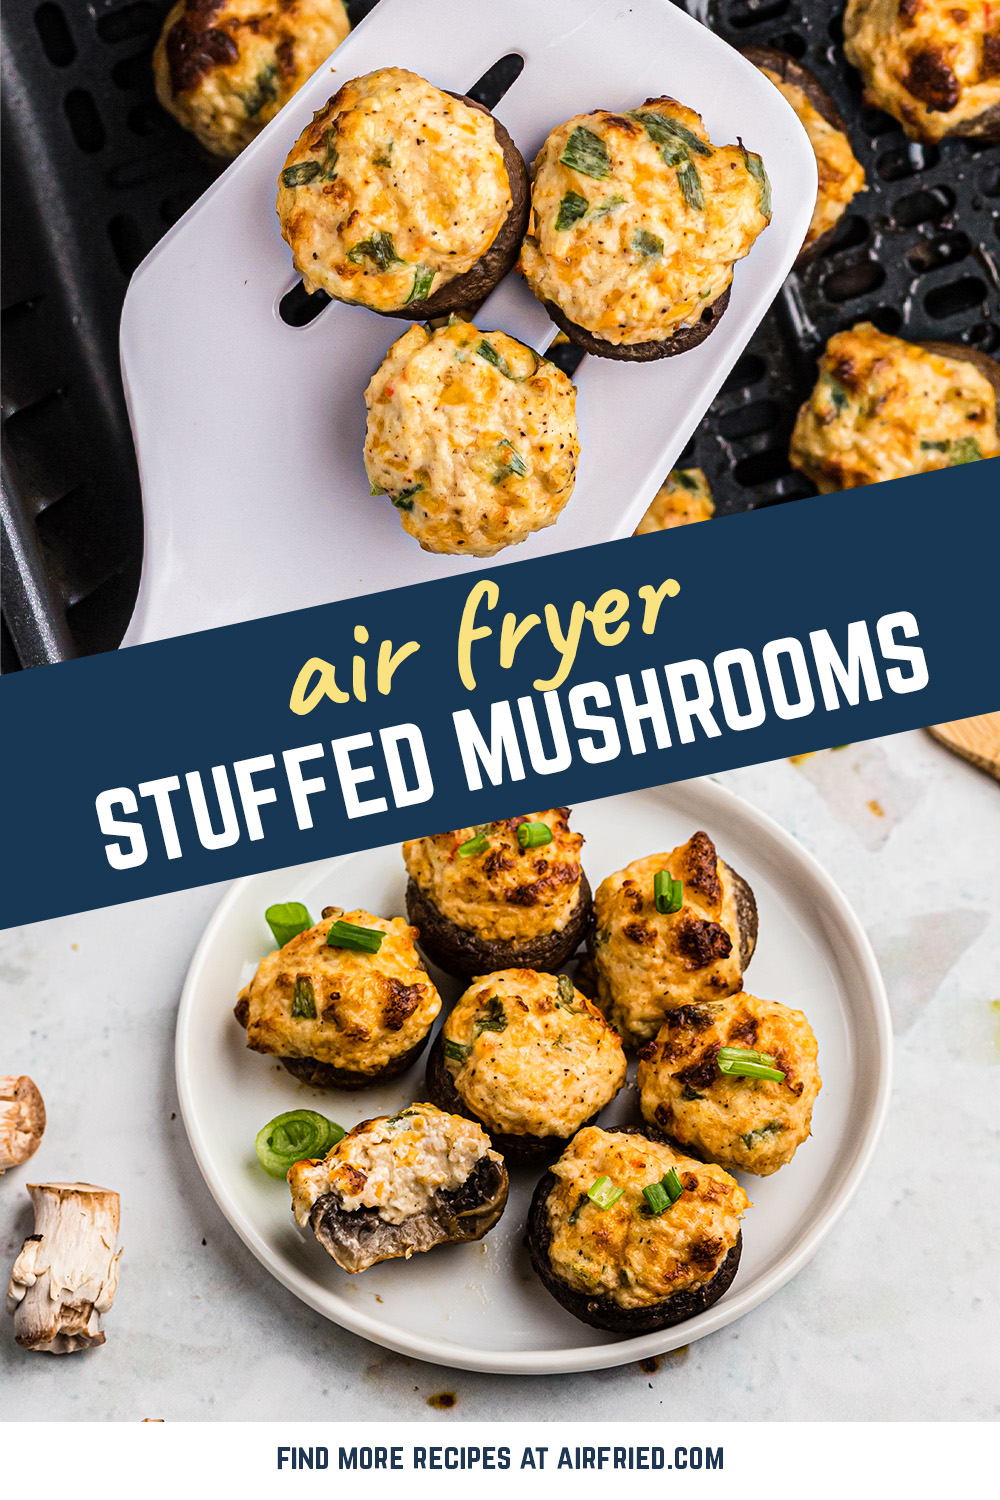 This stuffed mushroom recipe uses crab and shrimp to make a great seafood appetizer!  #airfryer #mushrooms #crab #shrimp